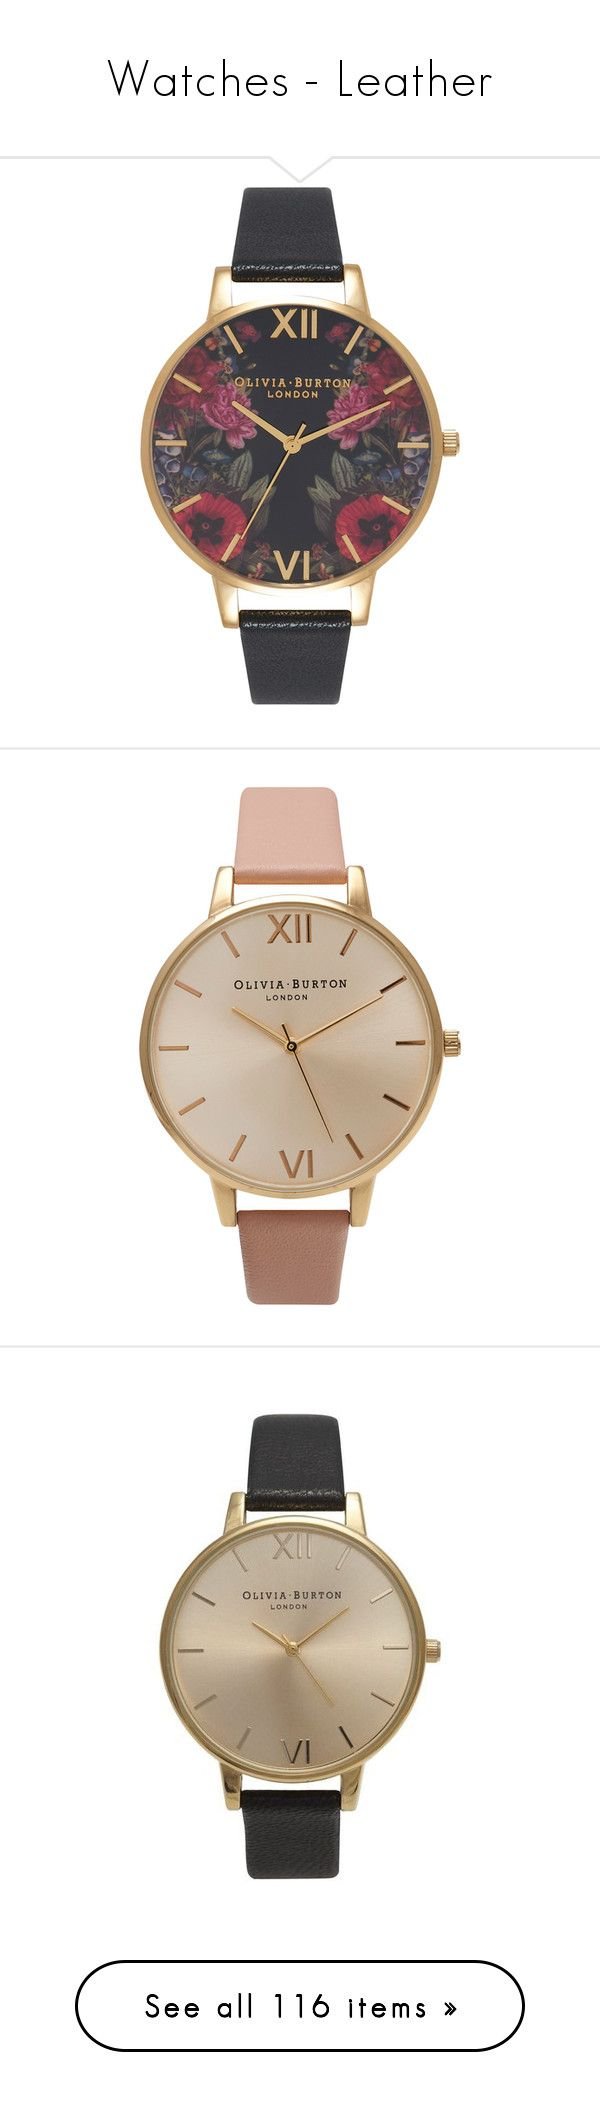 """""""Watches - Leather"""" by giovanna1995 ❤ liked on Polyvore featuring gold, flower, Leather, watch, butterfly, jewelry, watches, pin jewelry, roman numeral jewelry and leather strap watches"""